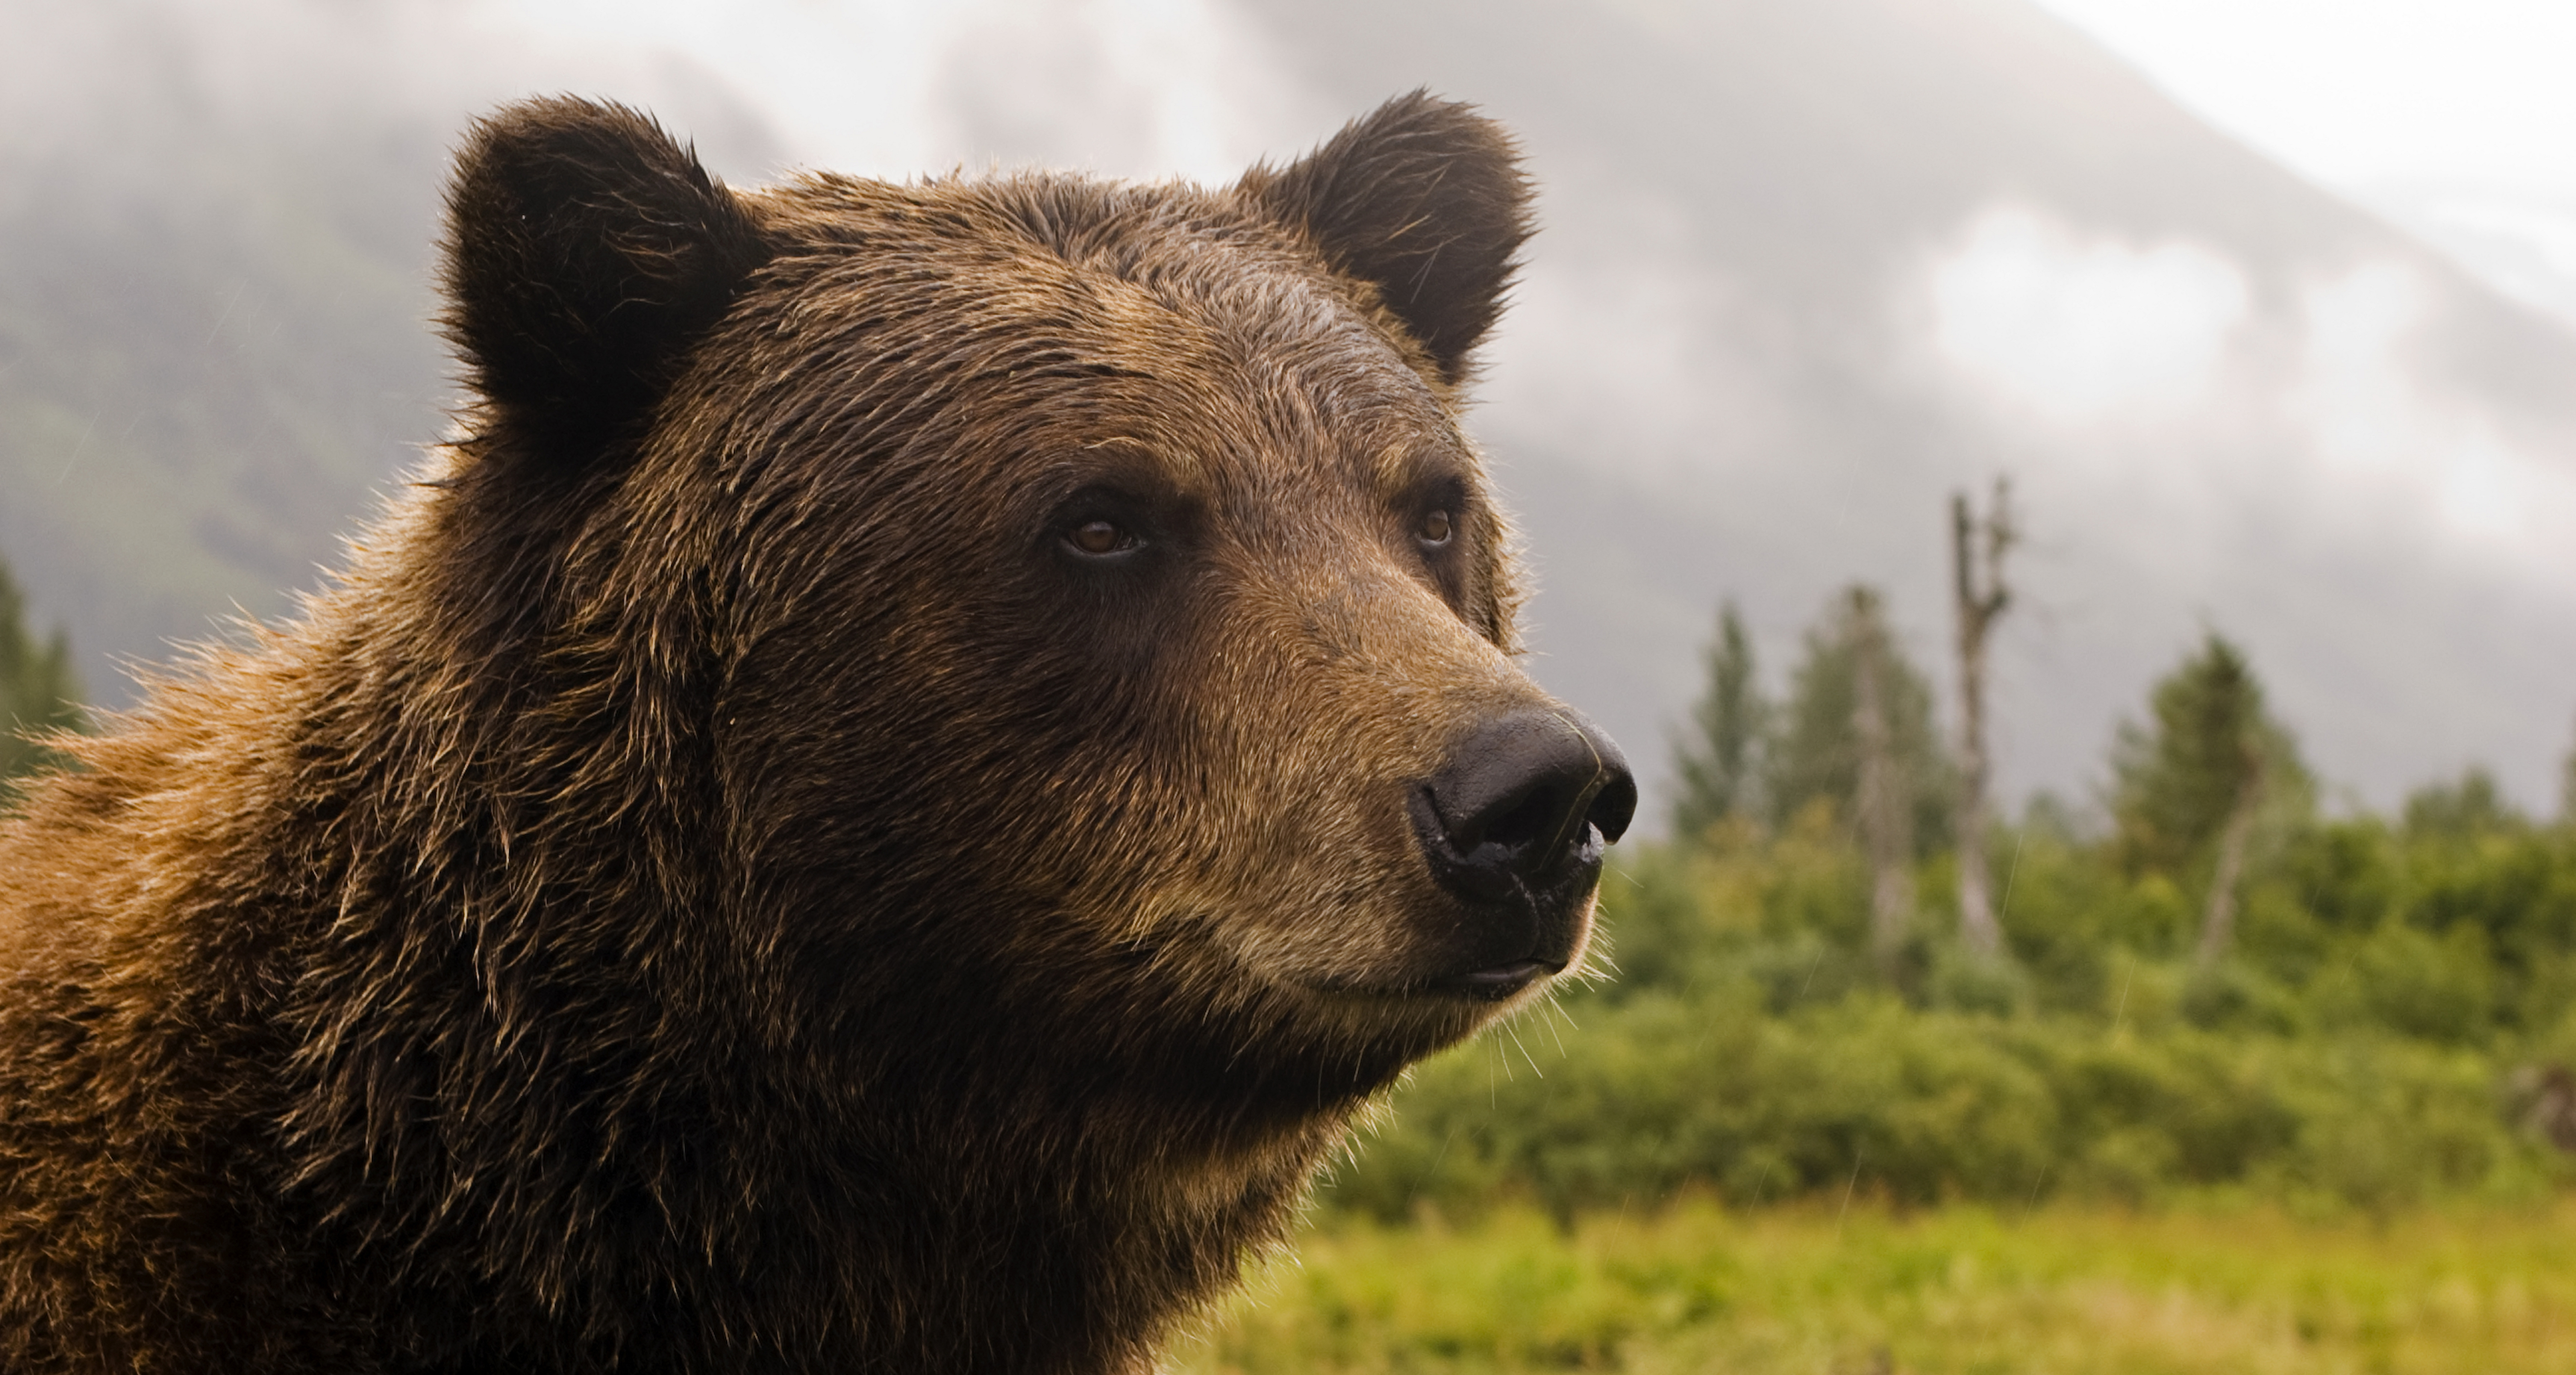 Grizzly Bear Wallpapers Hd